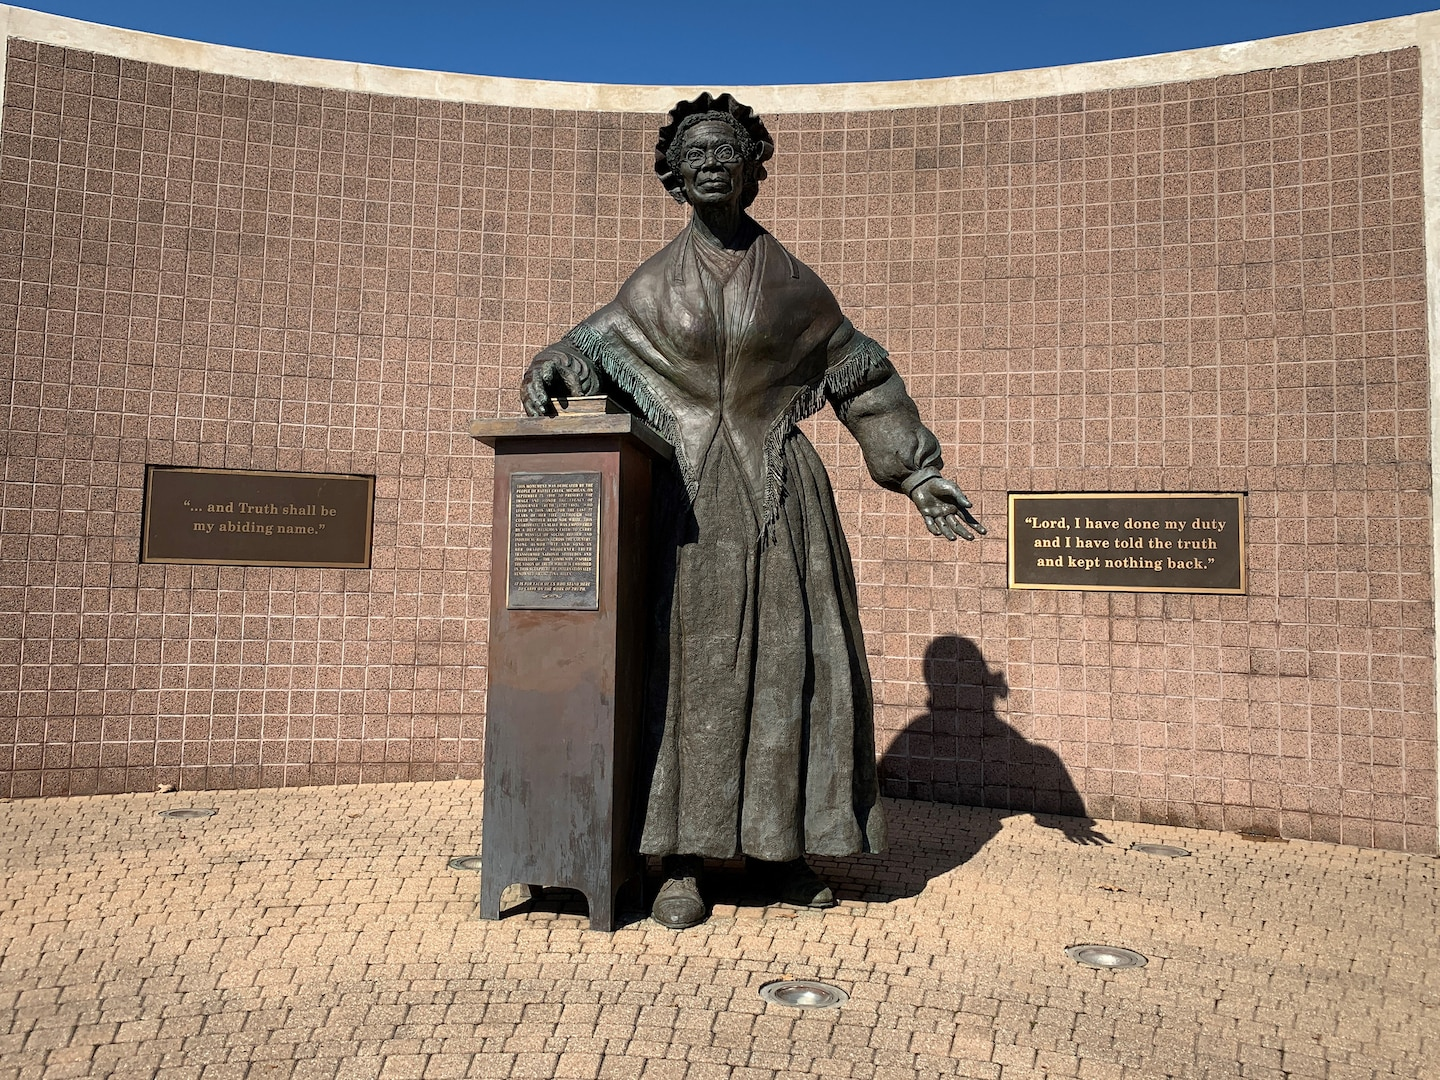 A large bronze statue in downtown Battle Creek, Michigan, reminds visitors of Sojourner Truth's impact on rights for all.